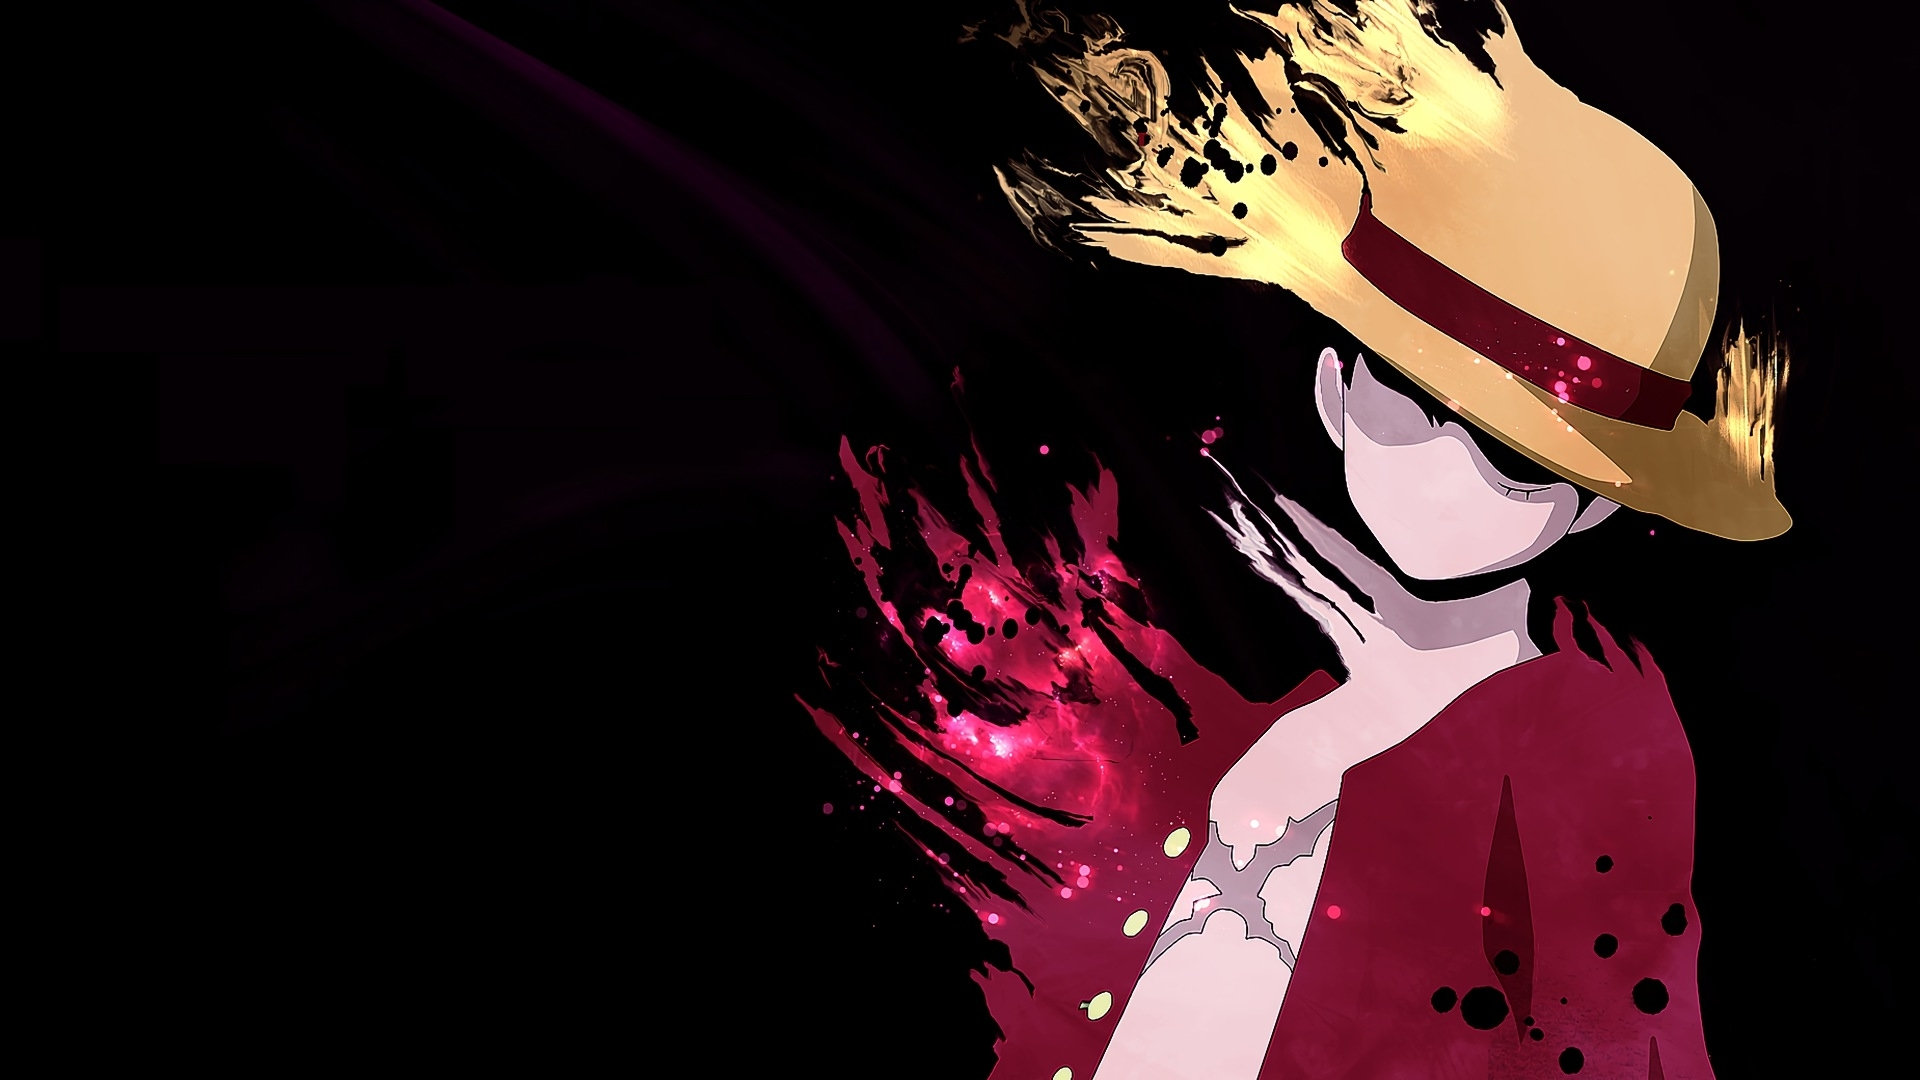 10 top luffy one piece wallpaper full hd 1920×1080 for pc desktop